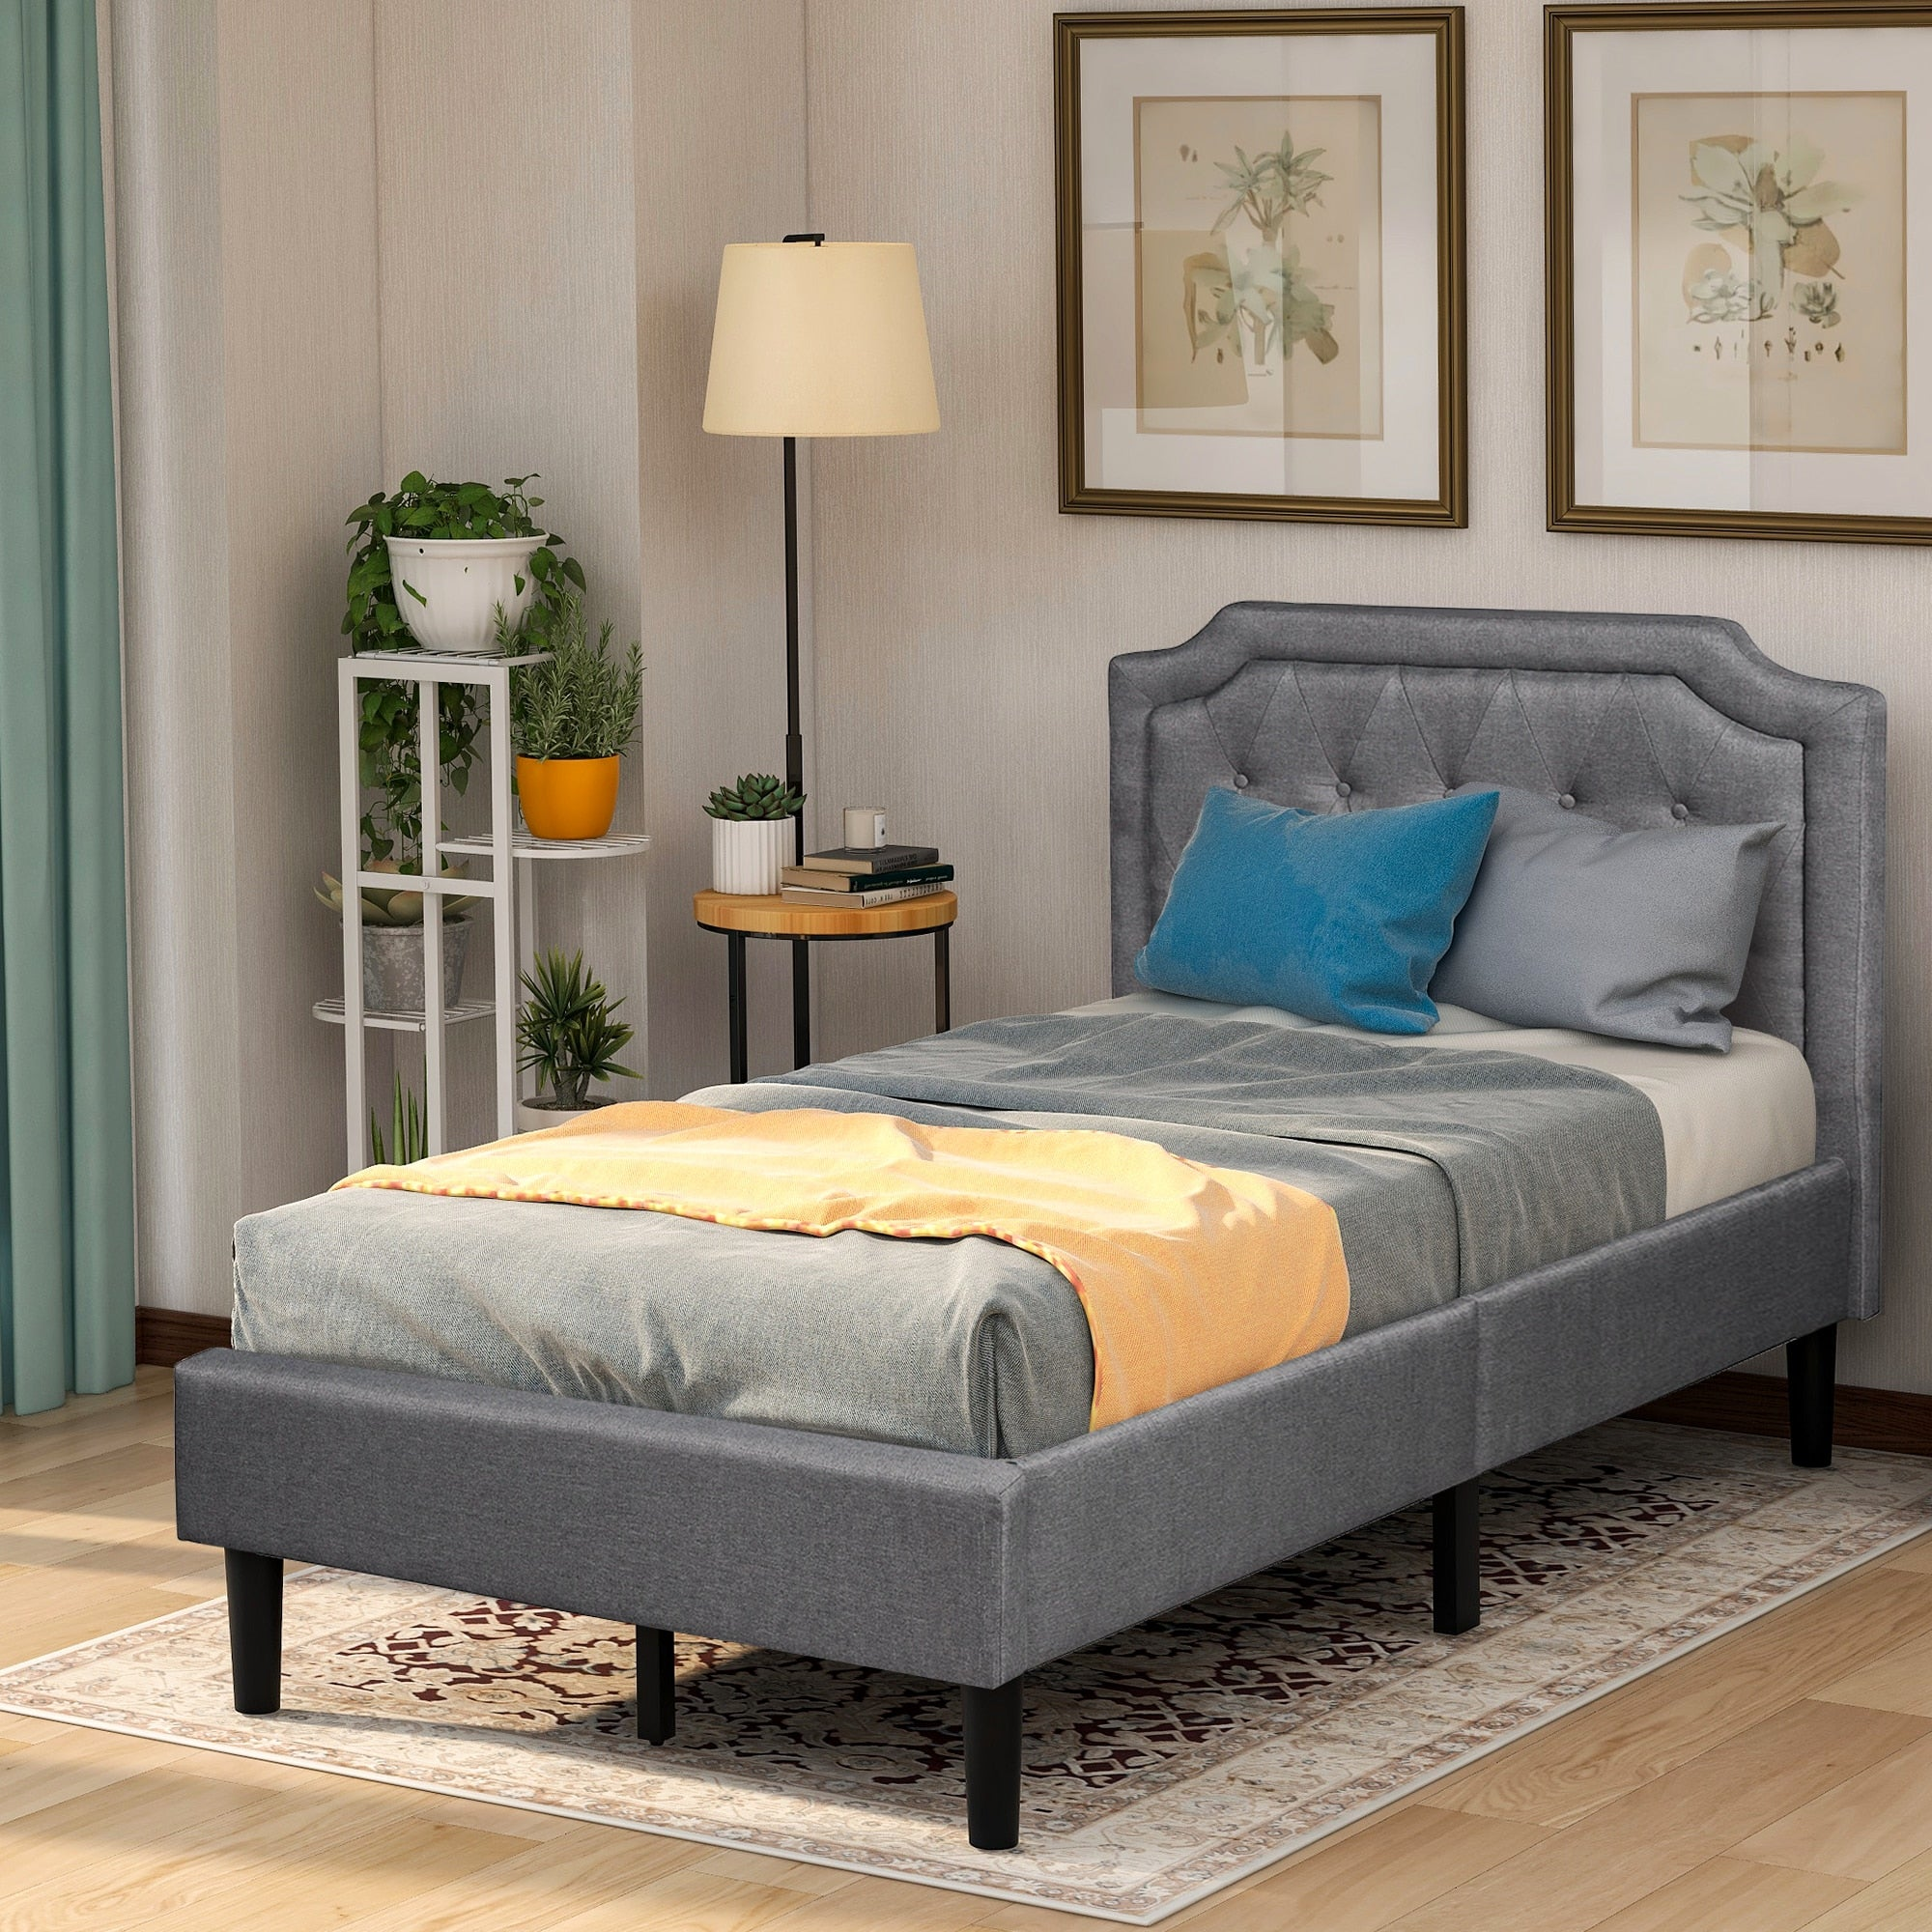 Bed Frame Twin Size Upholstered Linen Platform Bed Gary Bedroom Furniture Ship From USA Warehouse